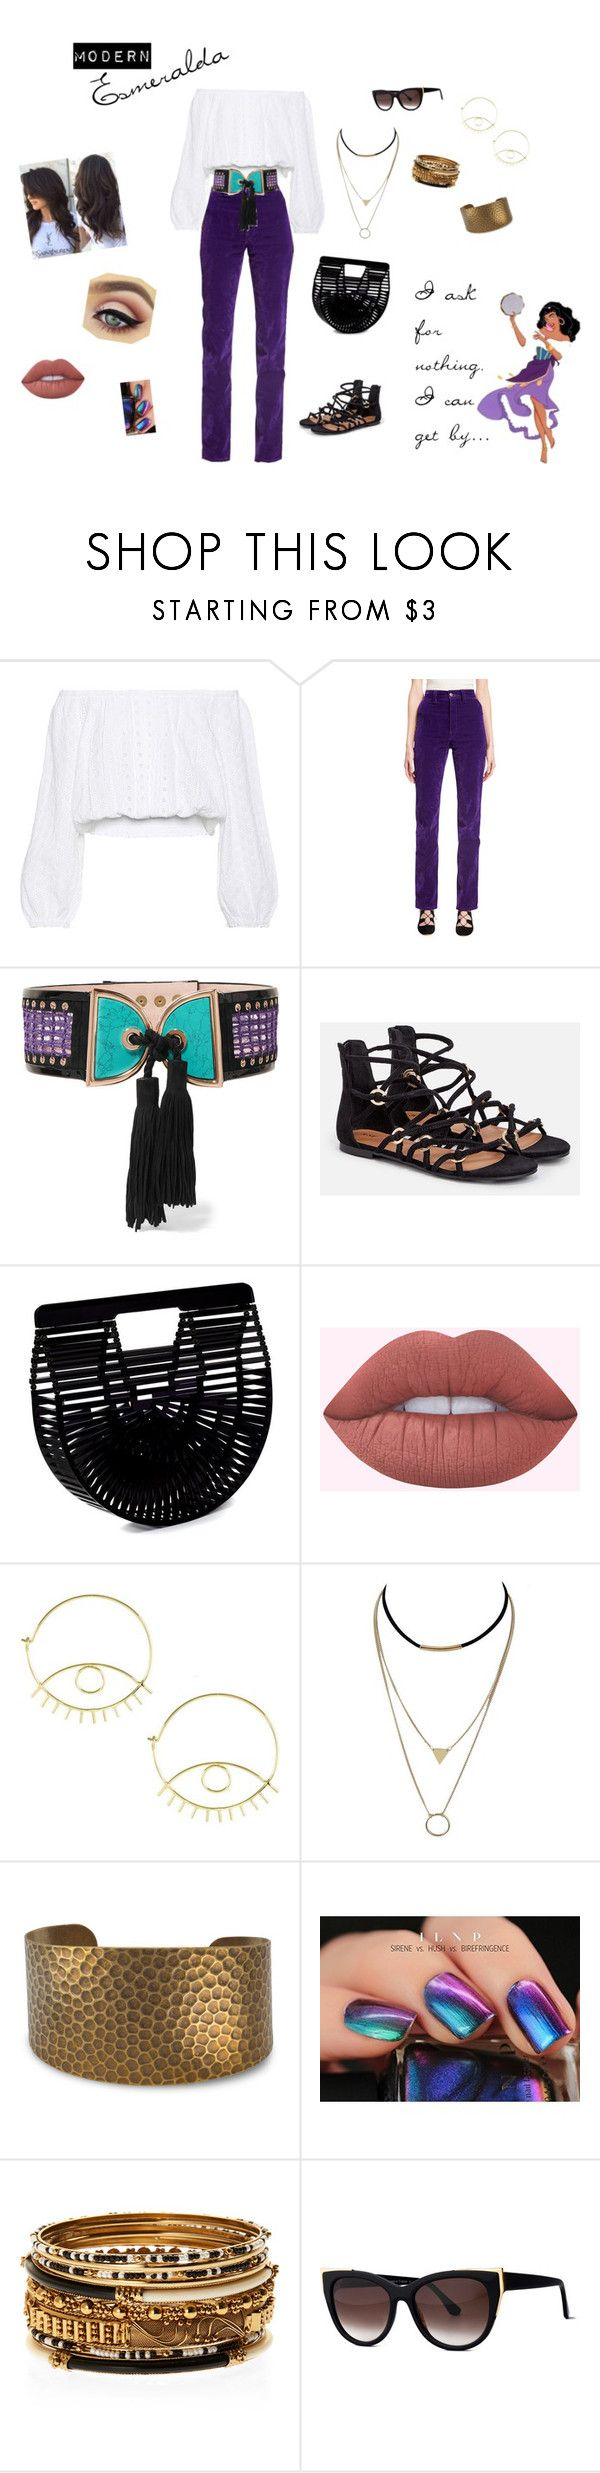 """""""Modern Esmeralda- Everyday look"""" by polishedpixie on Polyvore featuring Melissa Odabash, Marc Jacobs, Balmain, JustFab, Cult Gaia, Hush, Amrita Singh, Thierry Lasry and modern"""